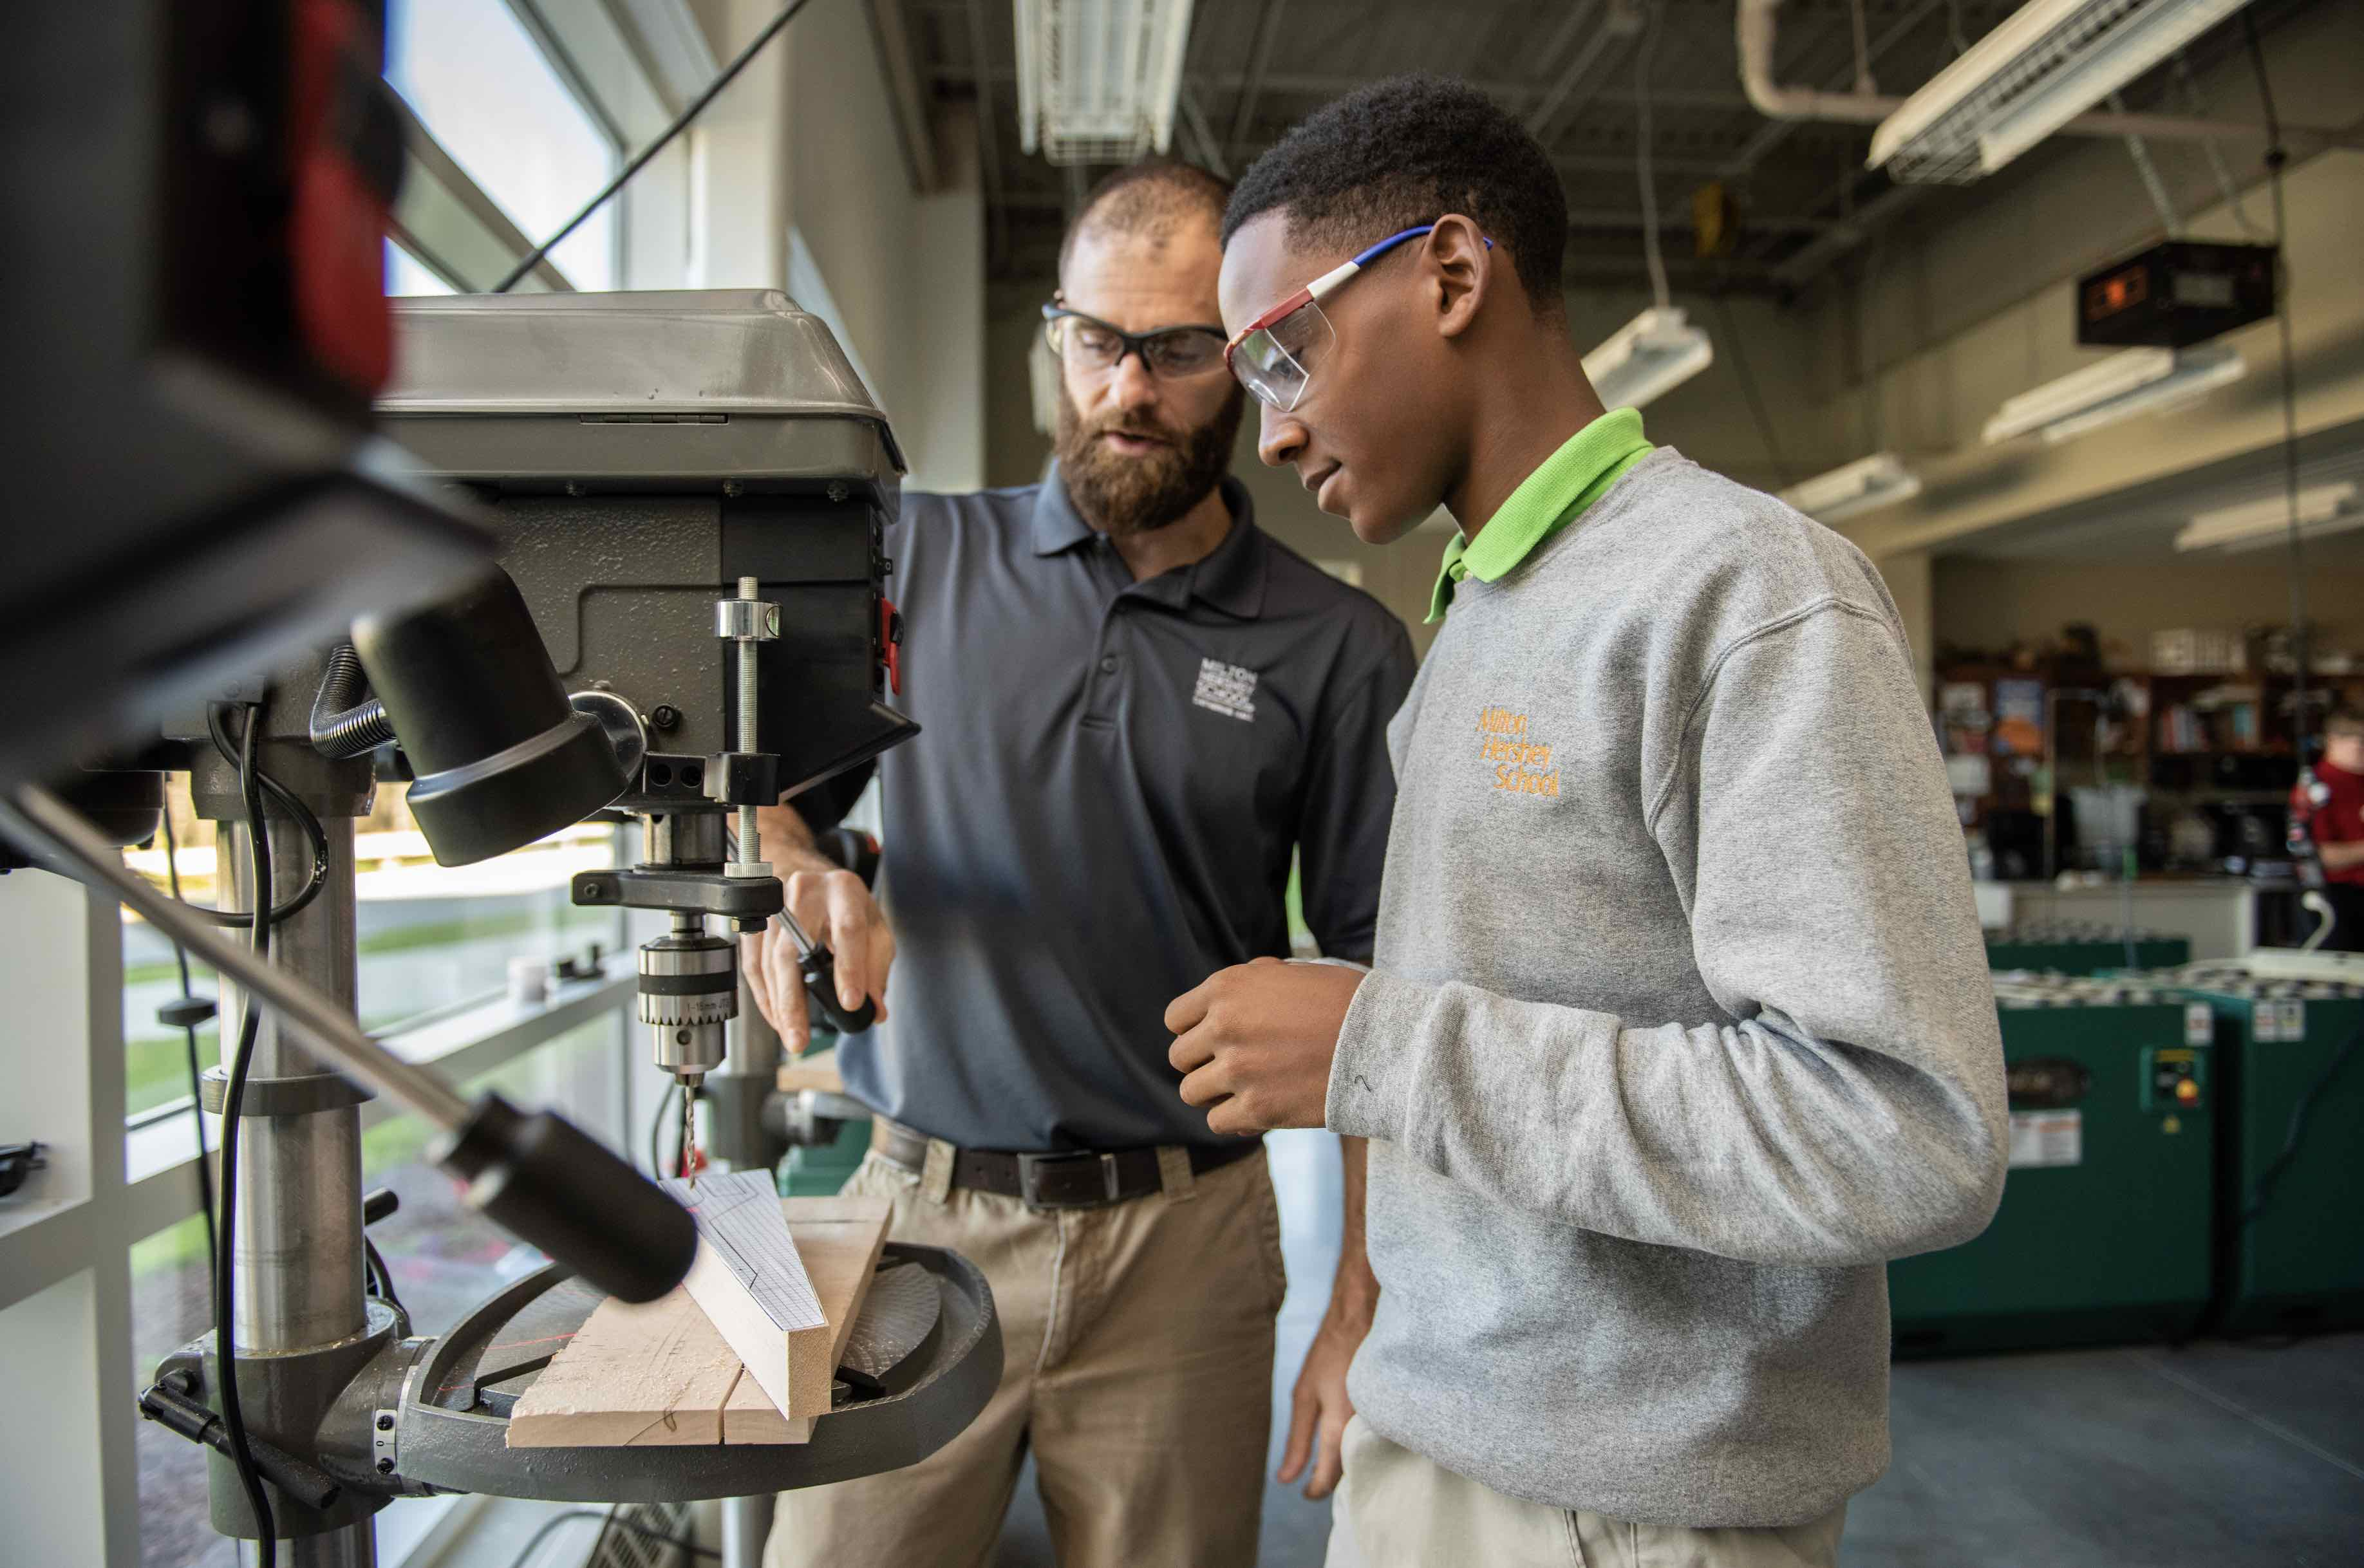 Career and technical education at MHS